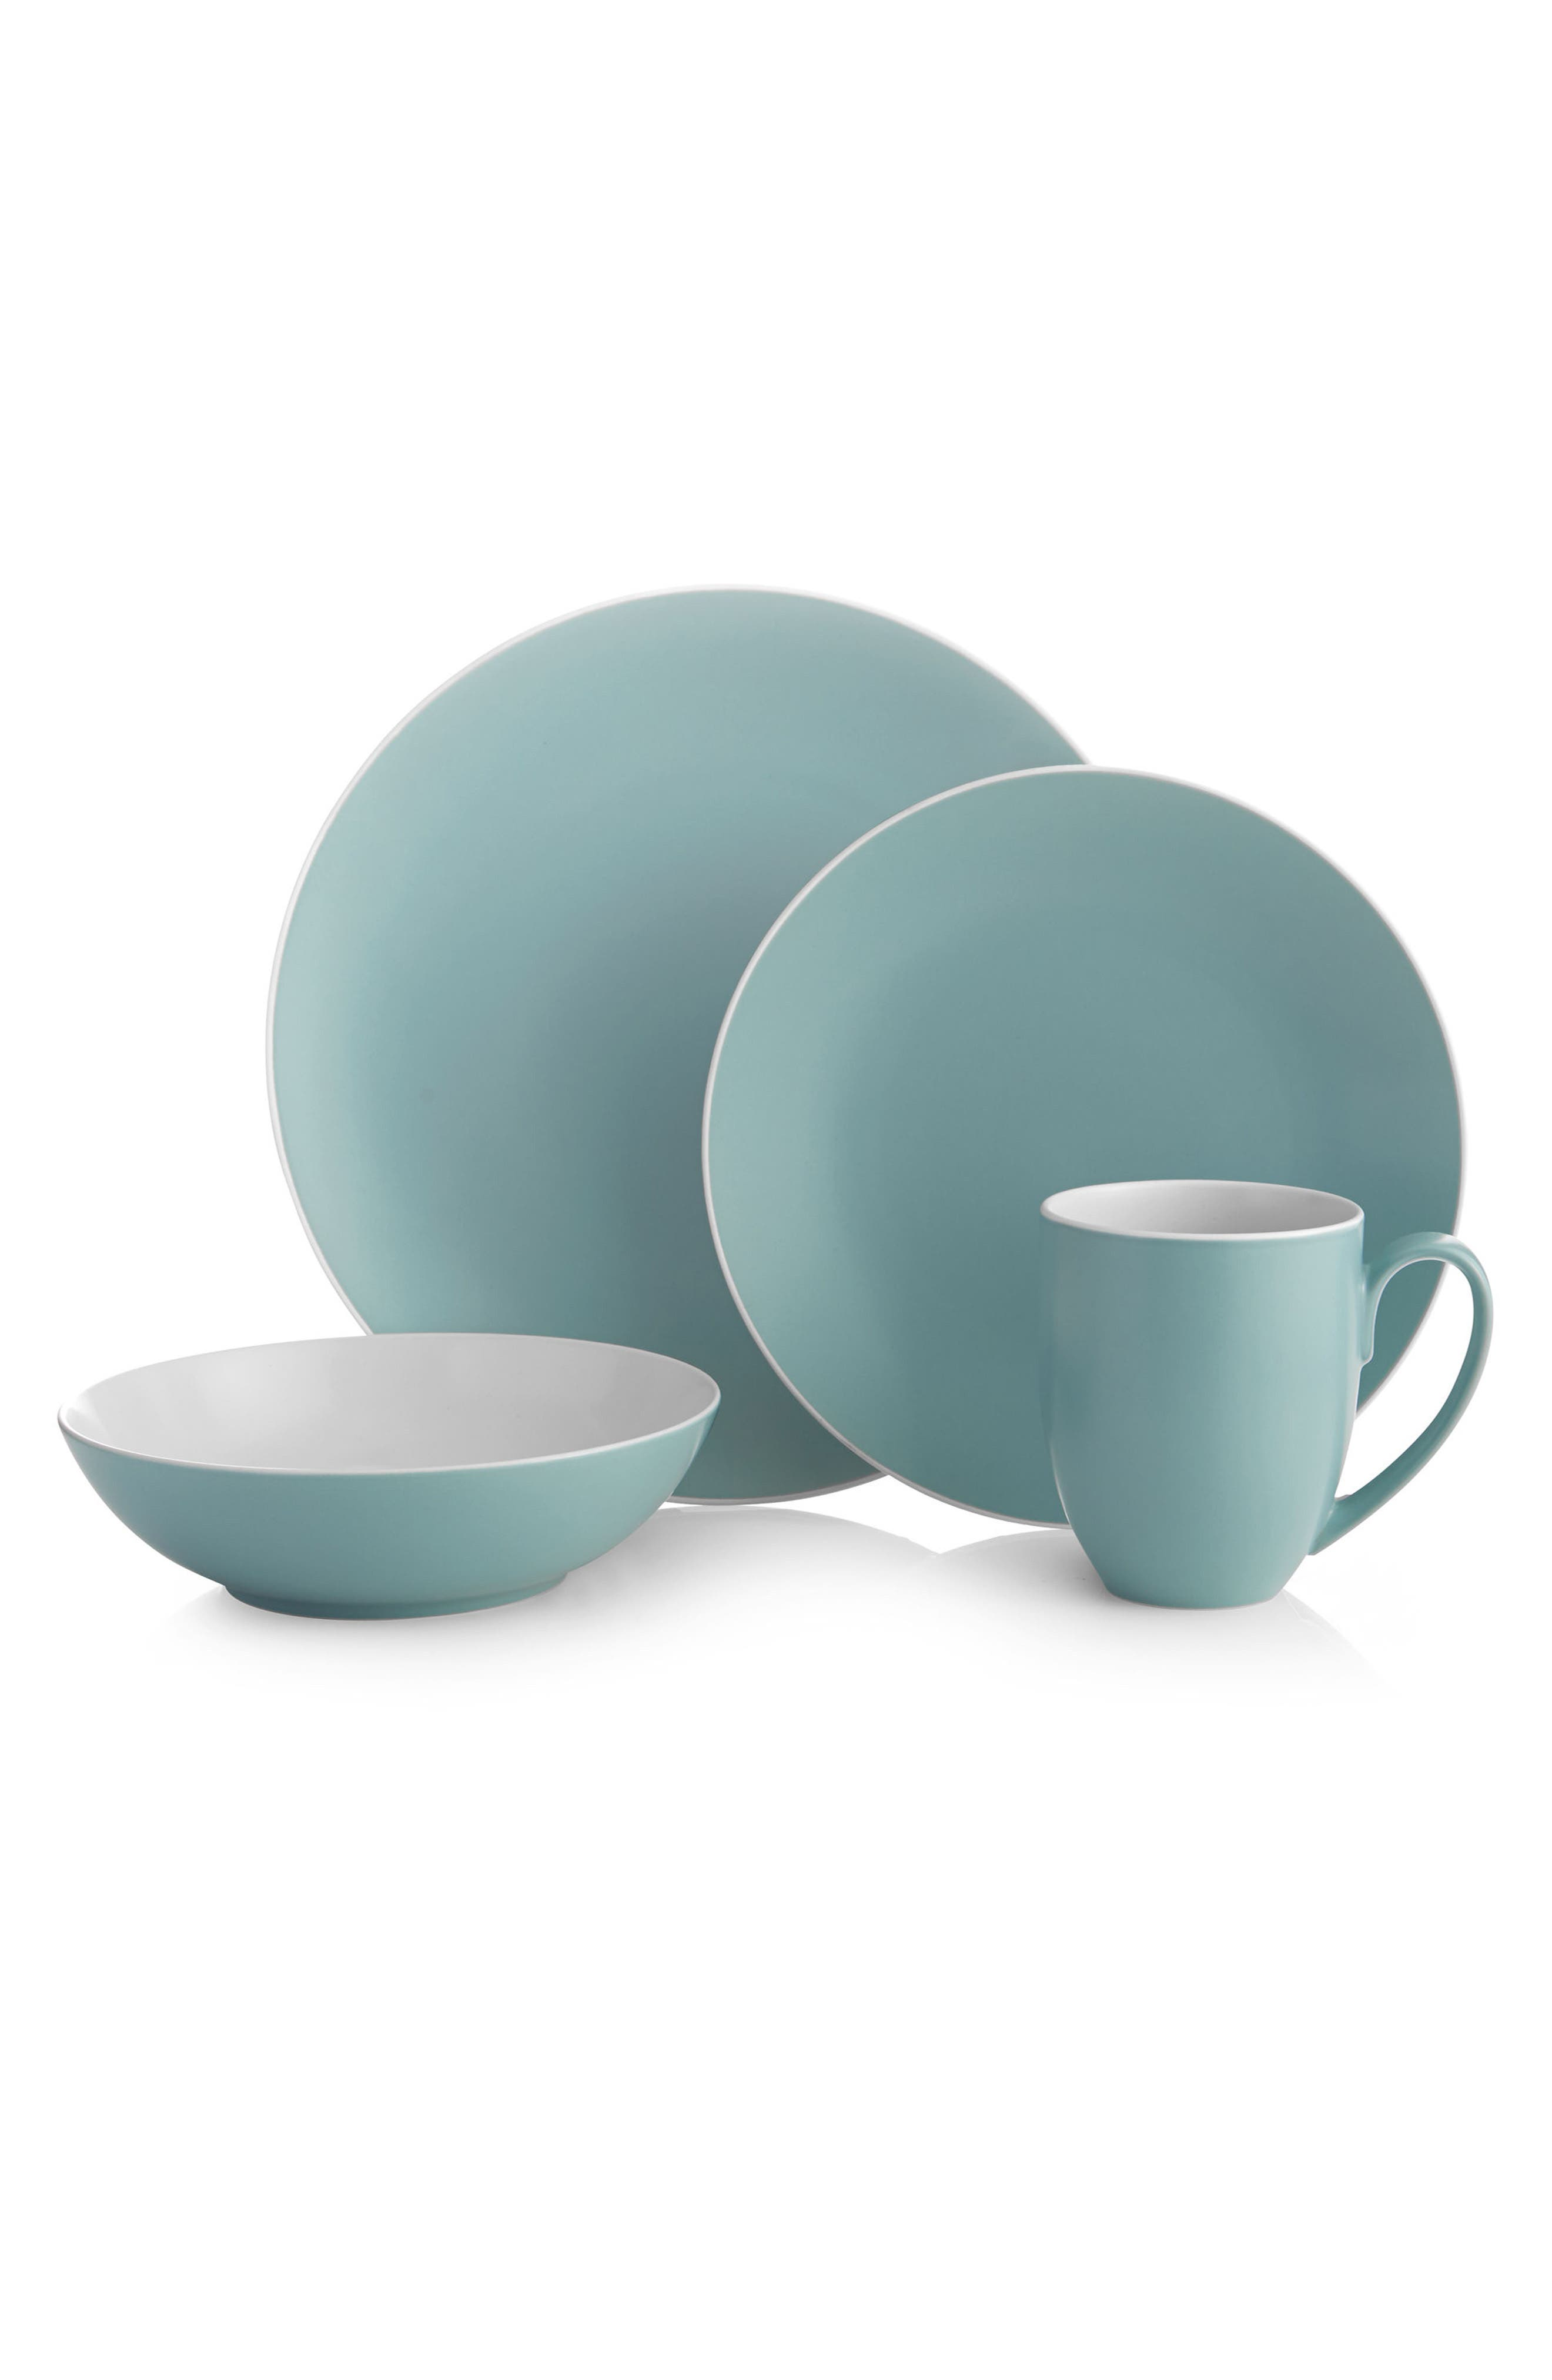 Nambe Pop 4Piece Place Setting Size One Size  Blue